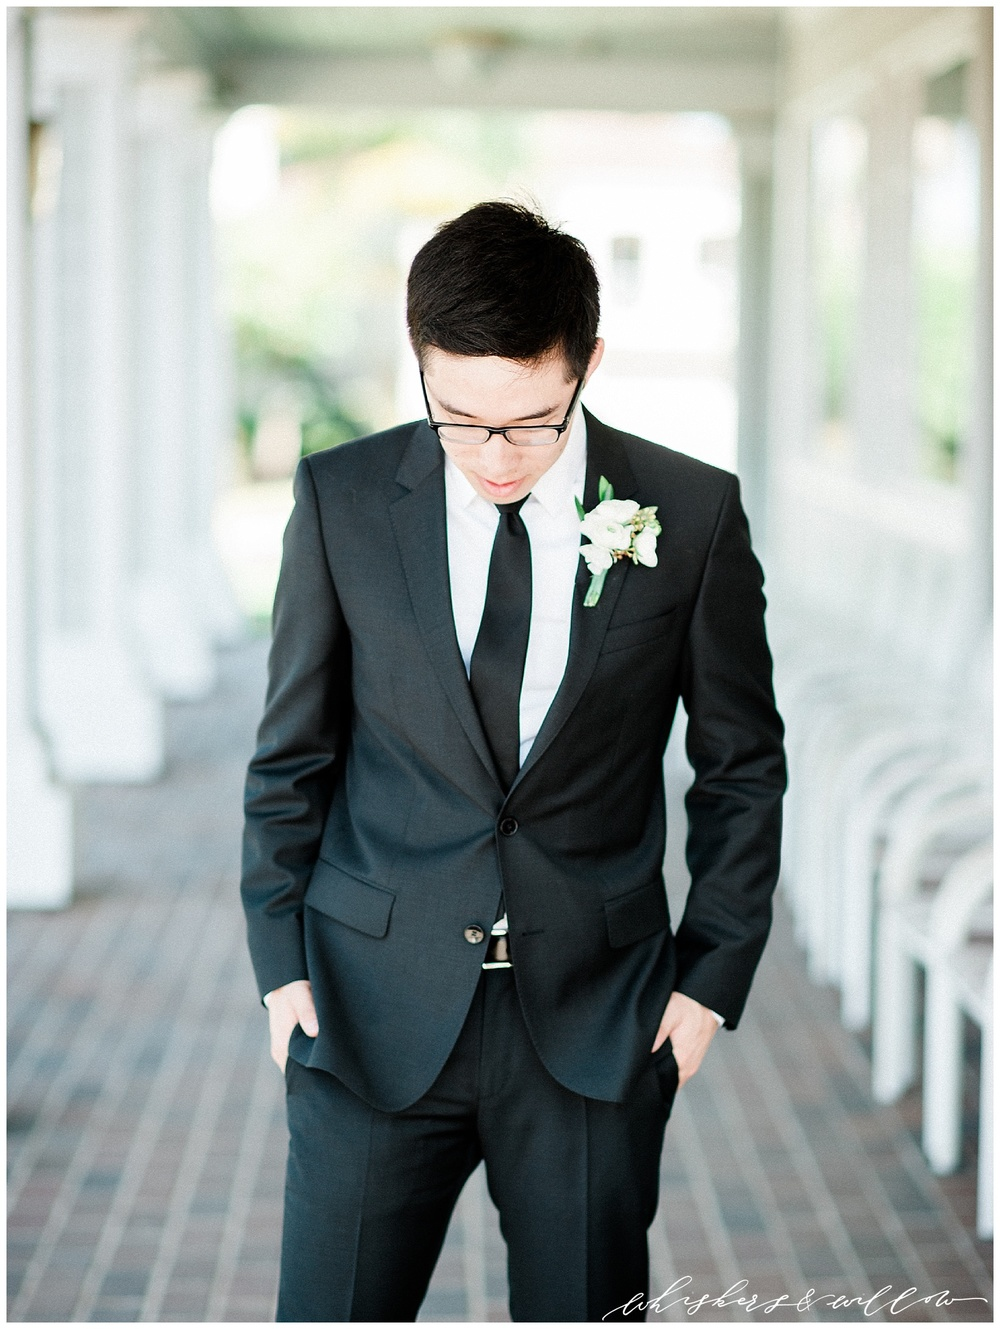 Classic black tux | Groom tux | San Diego fine art wedding photography | Carmel Mountain Ranch Country Club Wedding | Whiskers and Willow Photography